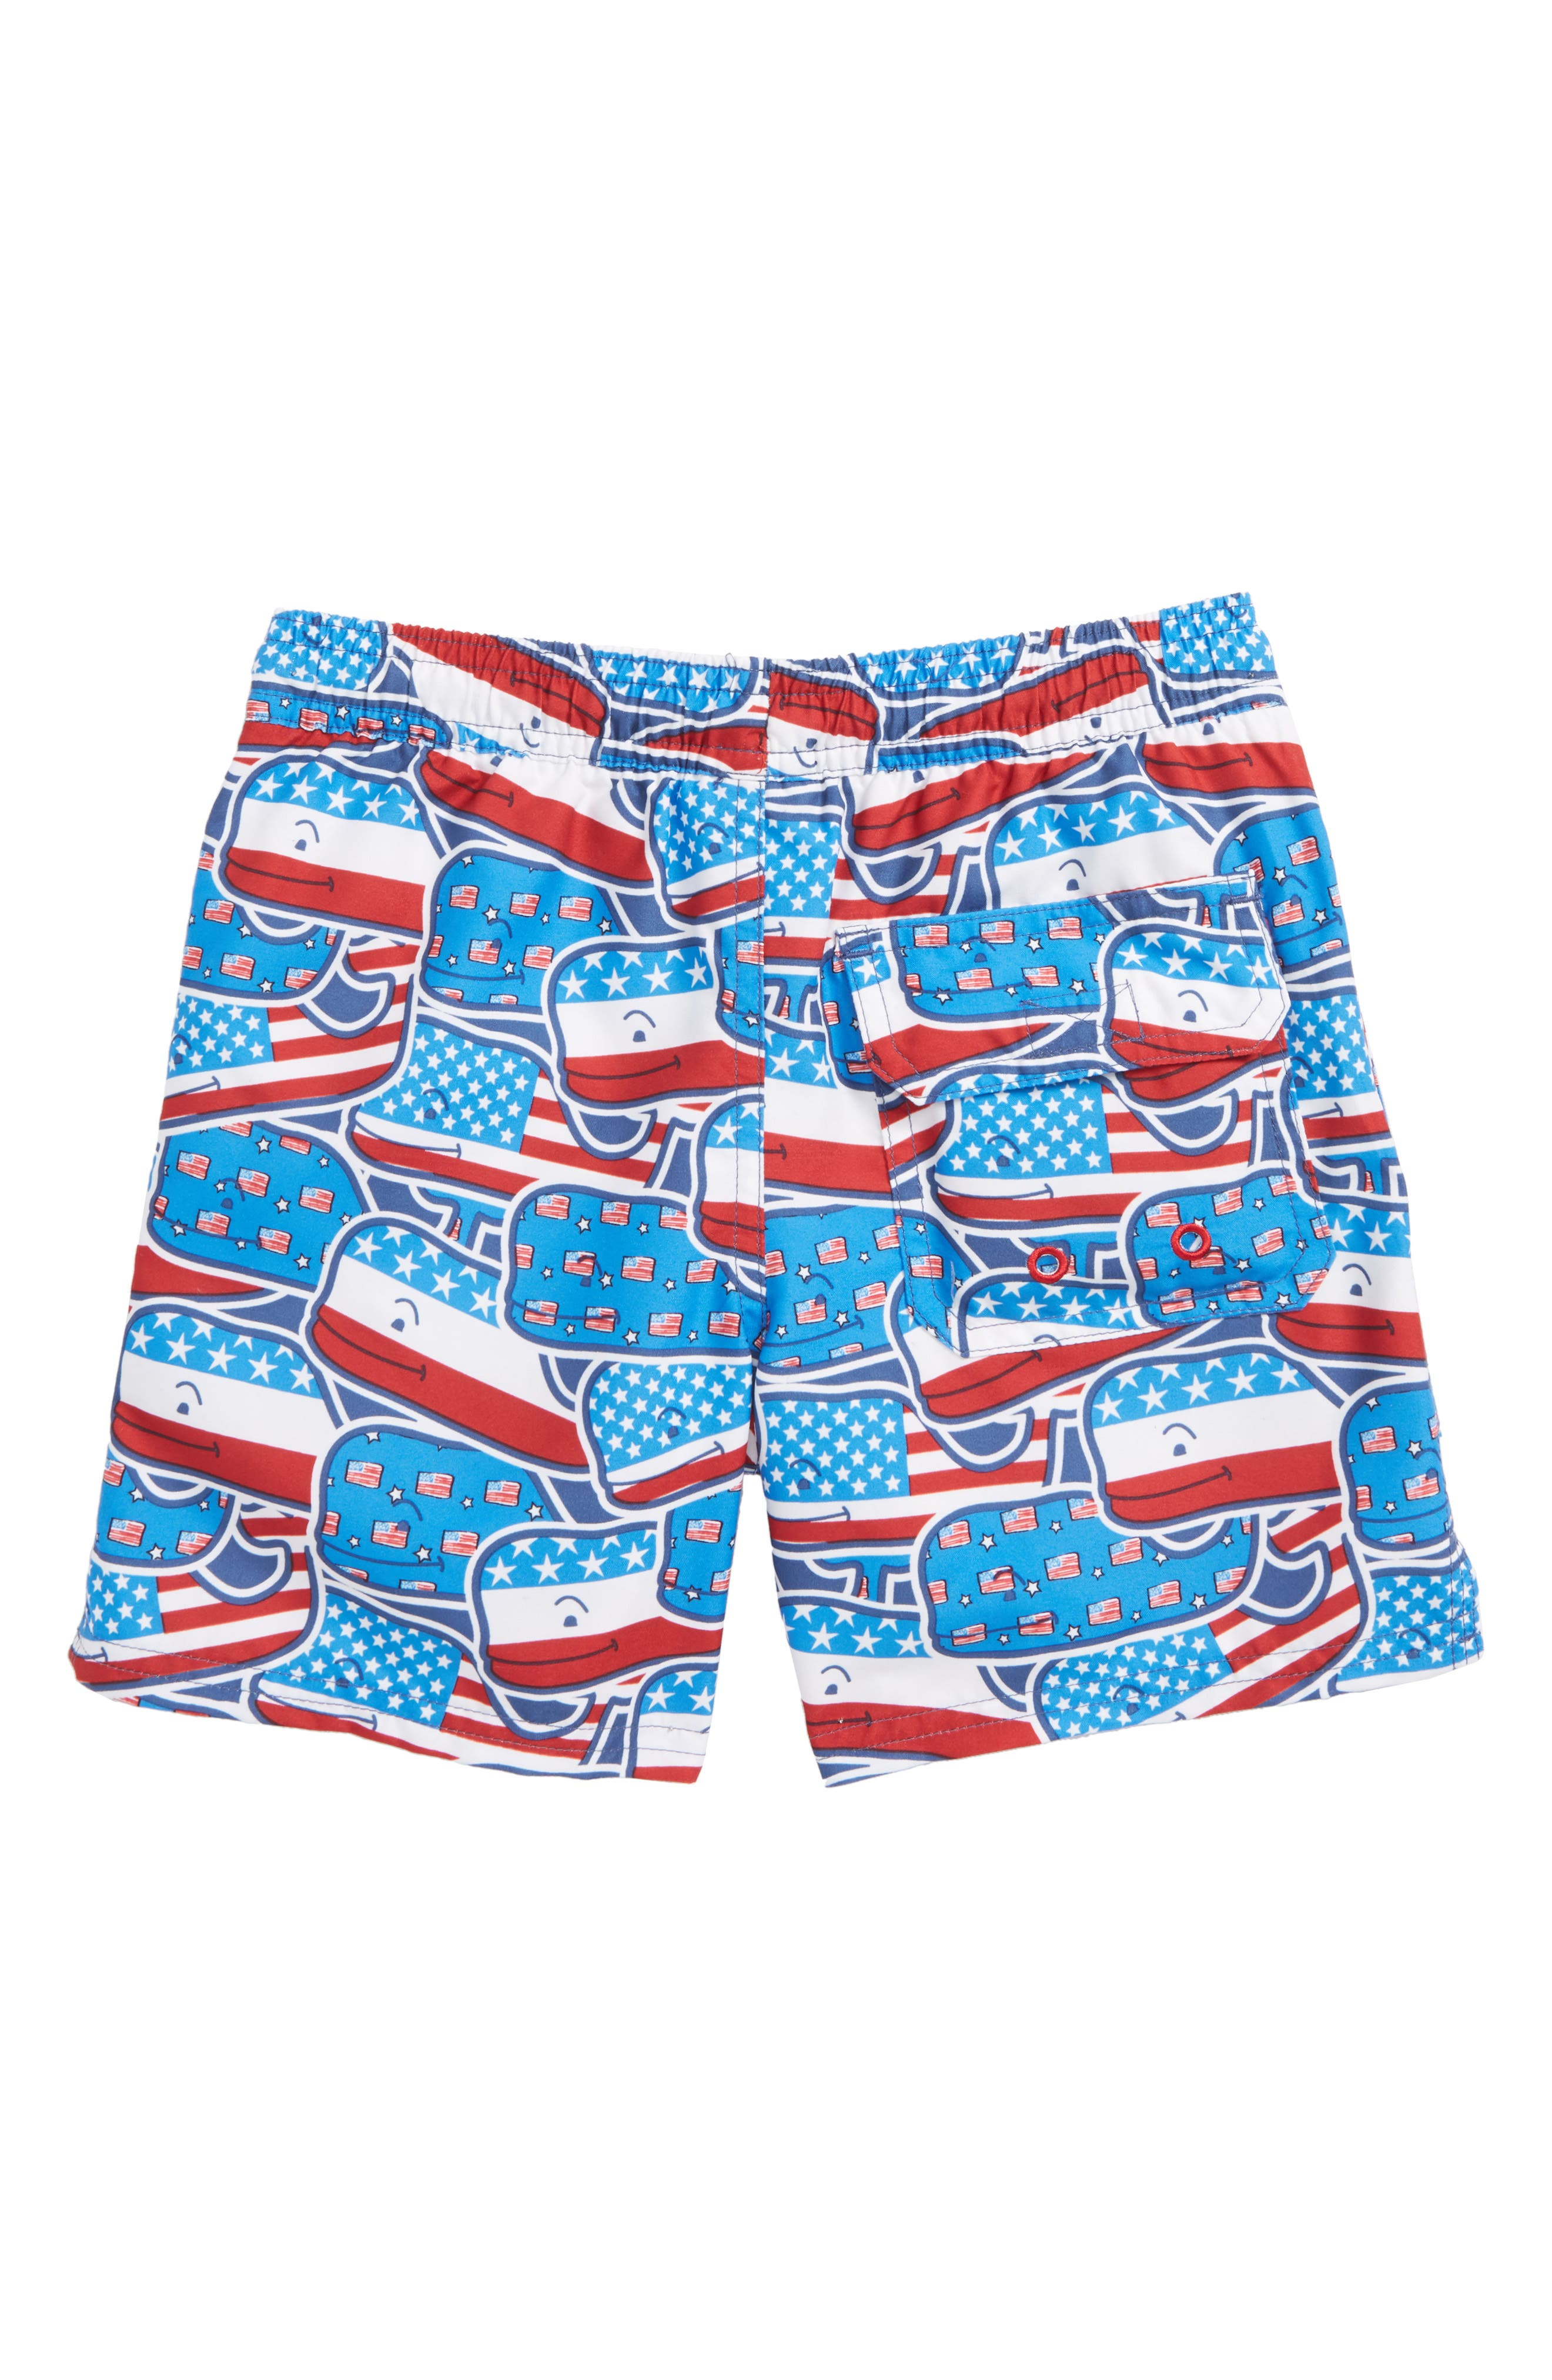 Chappy Whaley USA Swim Trunks,                             Alternate thumbnail 2, color,                             461